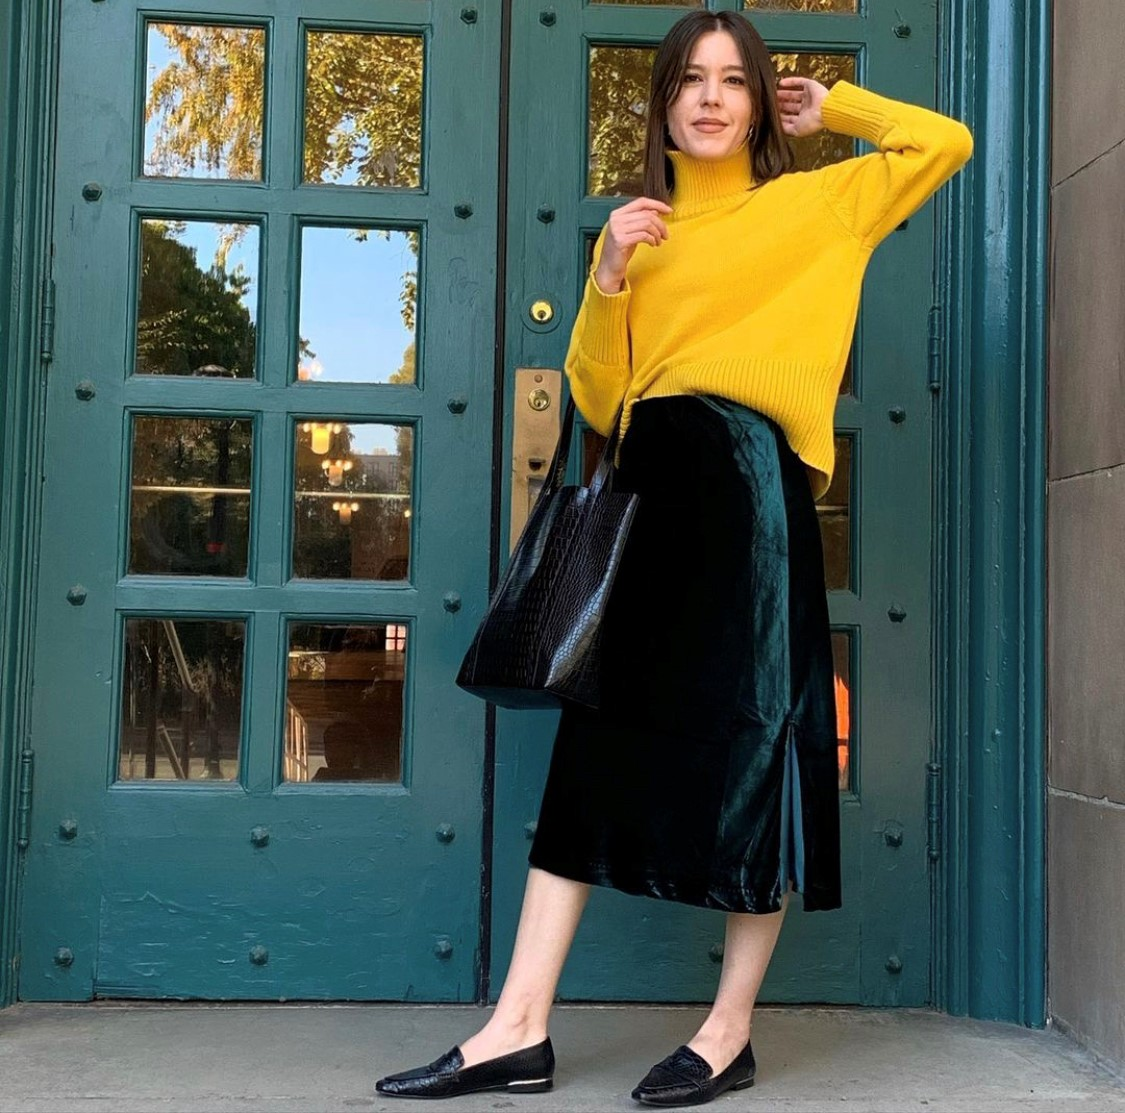 Ann Taylor Stylist with yellow turtleneck, forest green velvet skirt, black loafer shoes and tote bag.